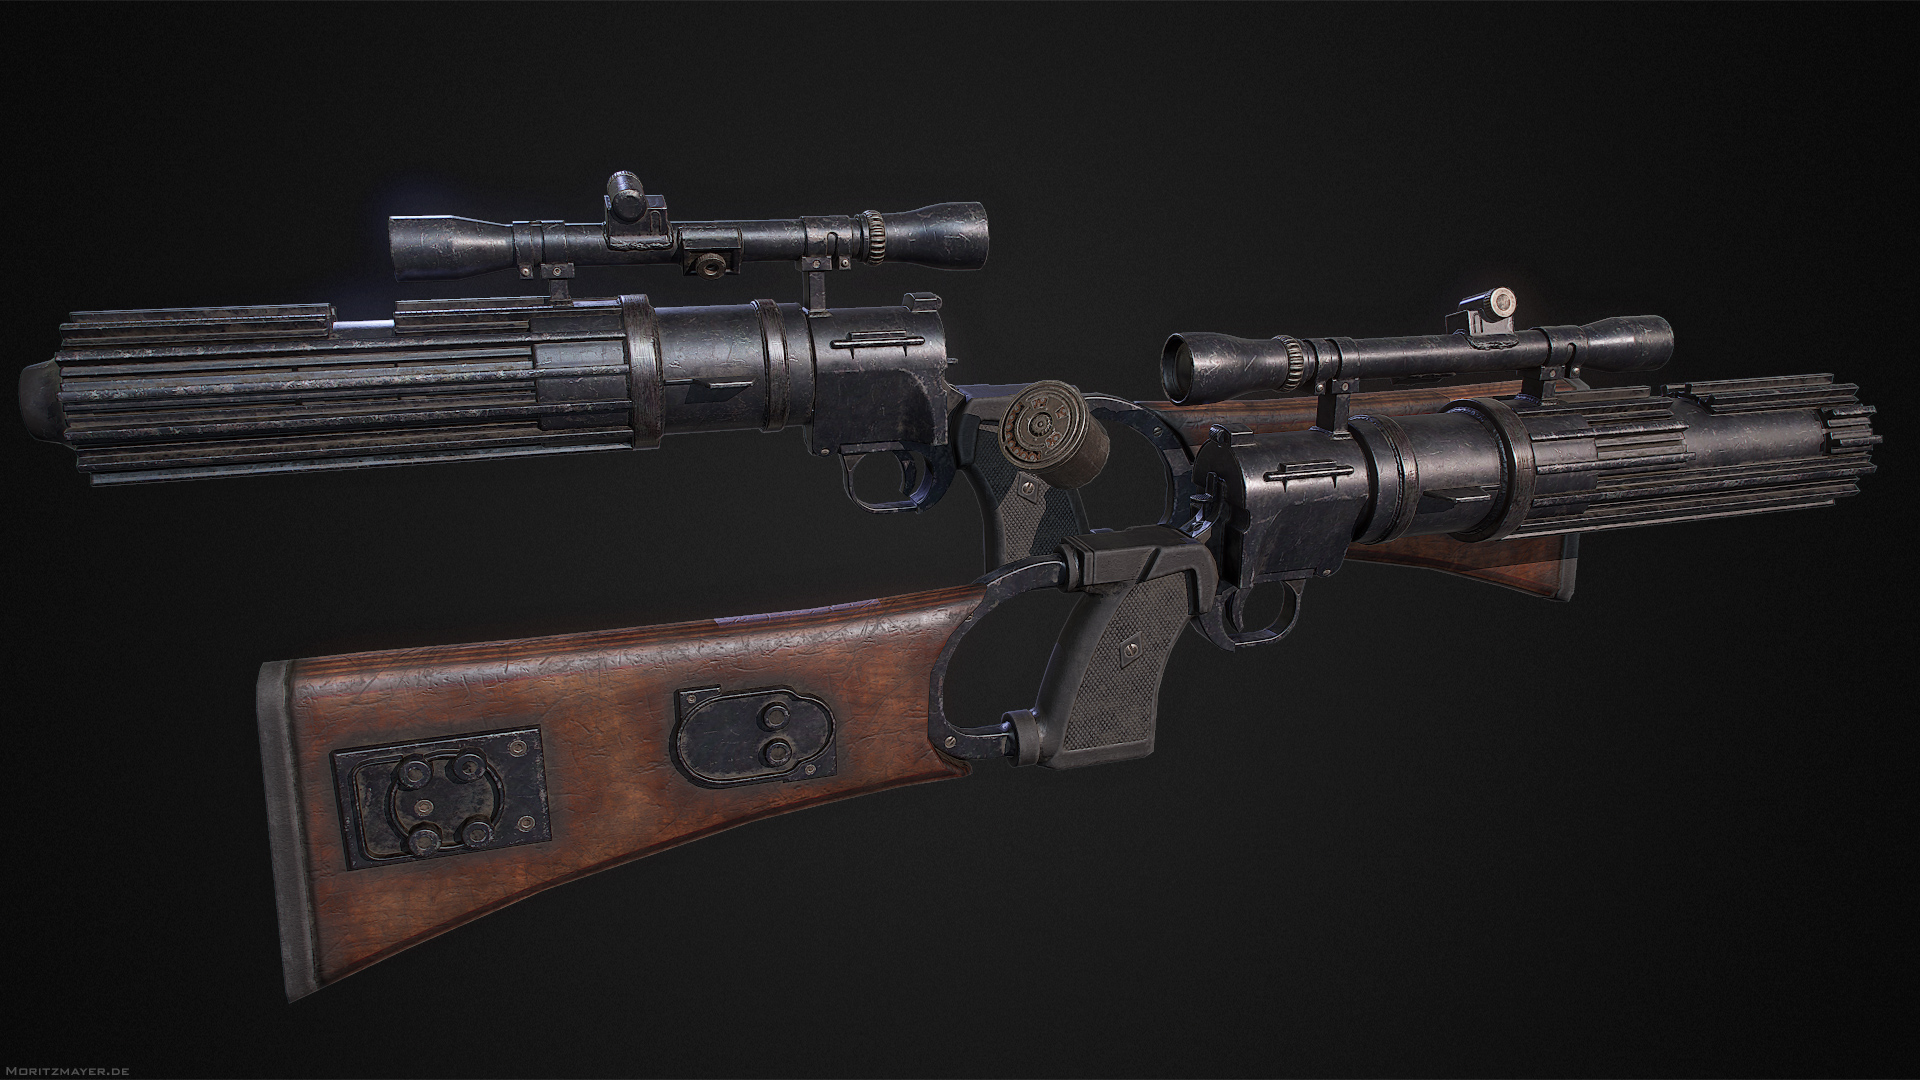 EE-3 Carbine by Kn3chtRuprecht